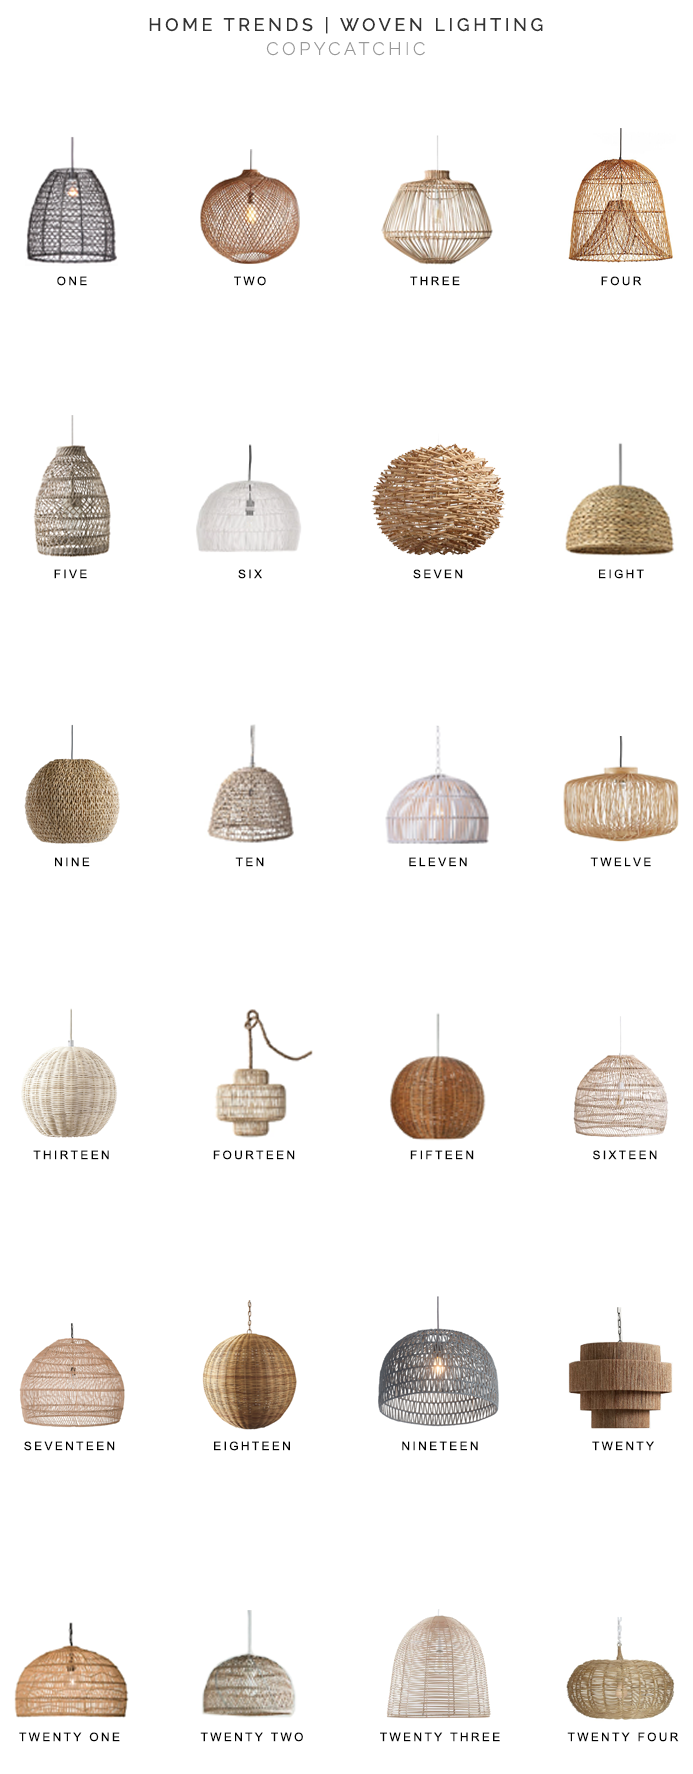 woven light fixture look for less, rattan chandelier, basket chandelier, woven chandelier, copycatchic luxe living for less, budget home decor and design, daily finds, home trends, sales, budget travel and room redos